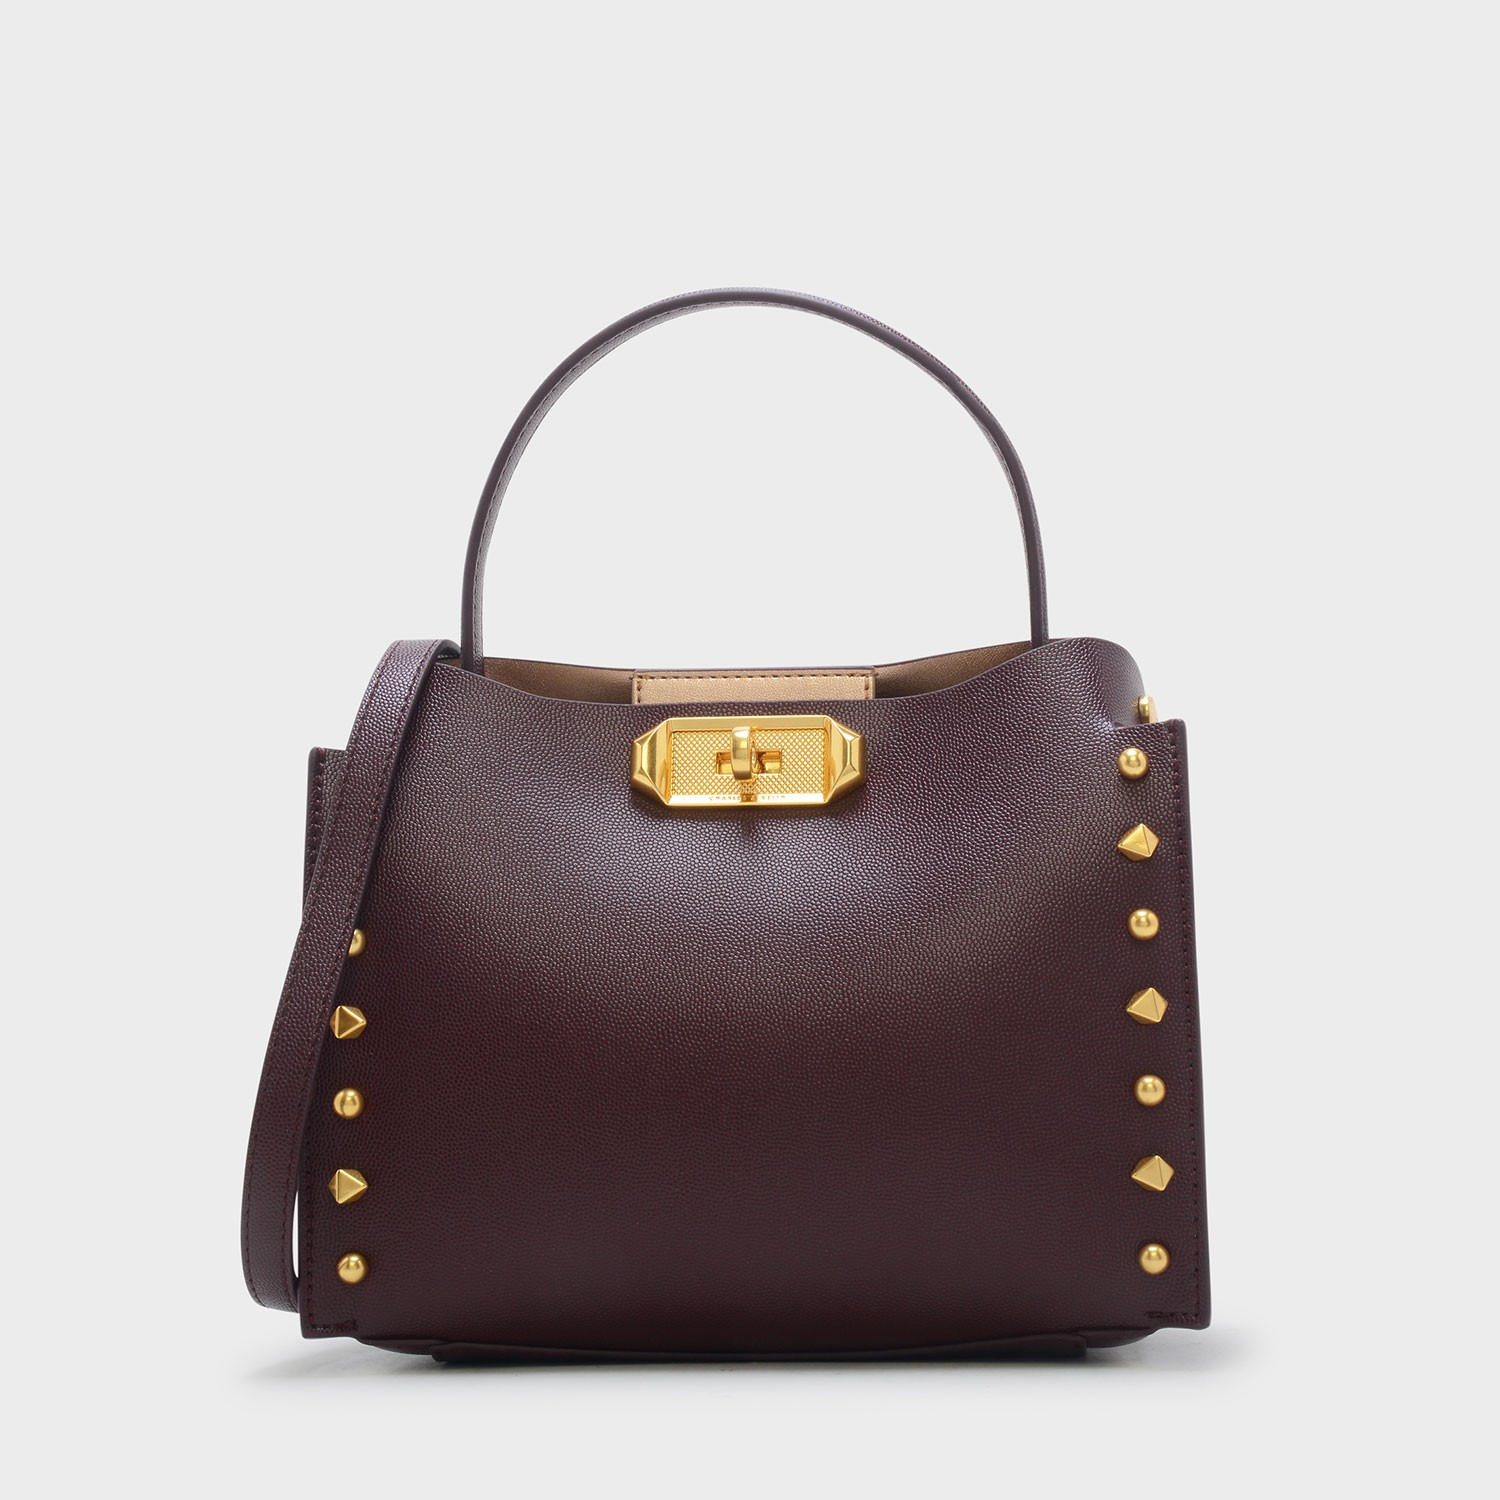 CHARLES & KEITH STUD-DETAIL HANDBAG *Burgundy